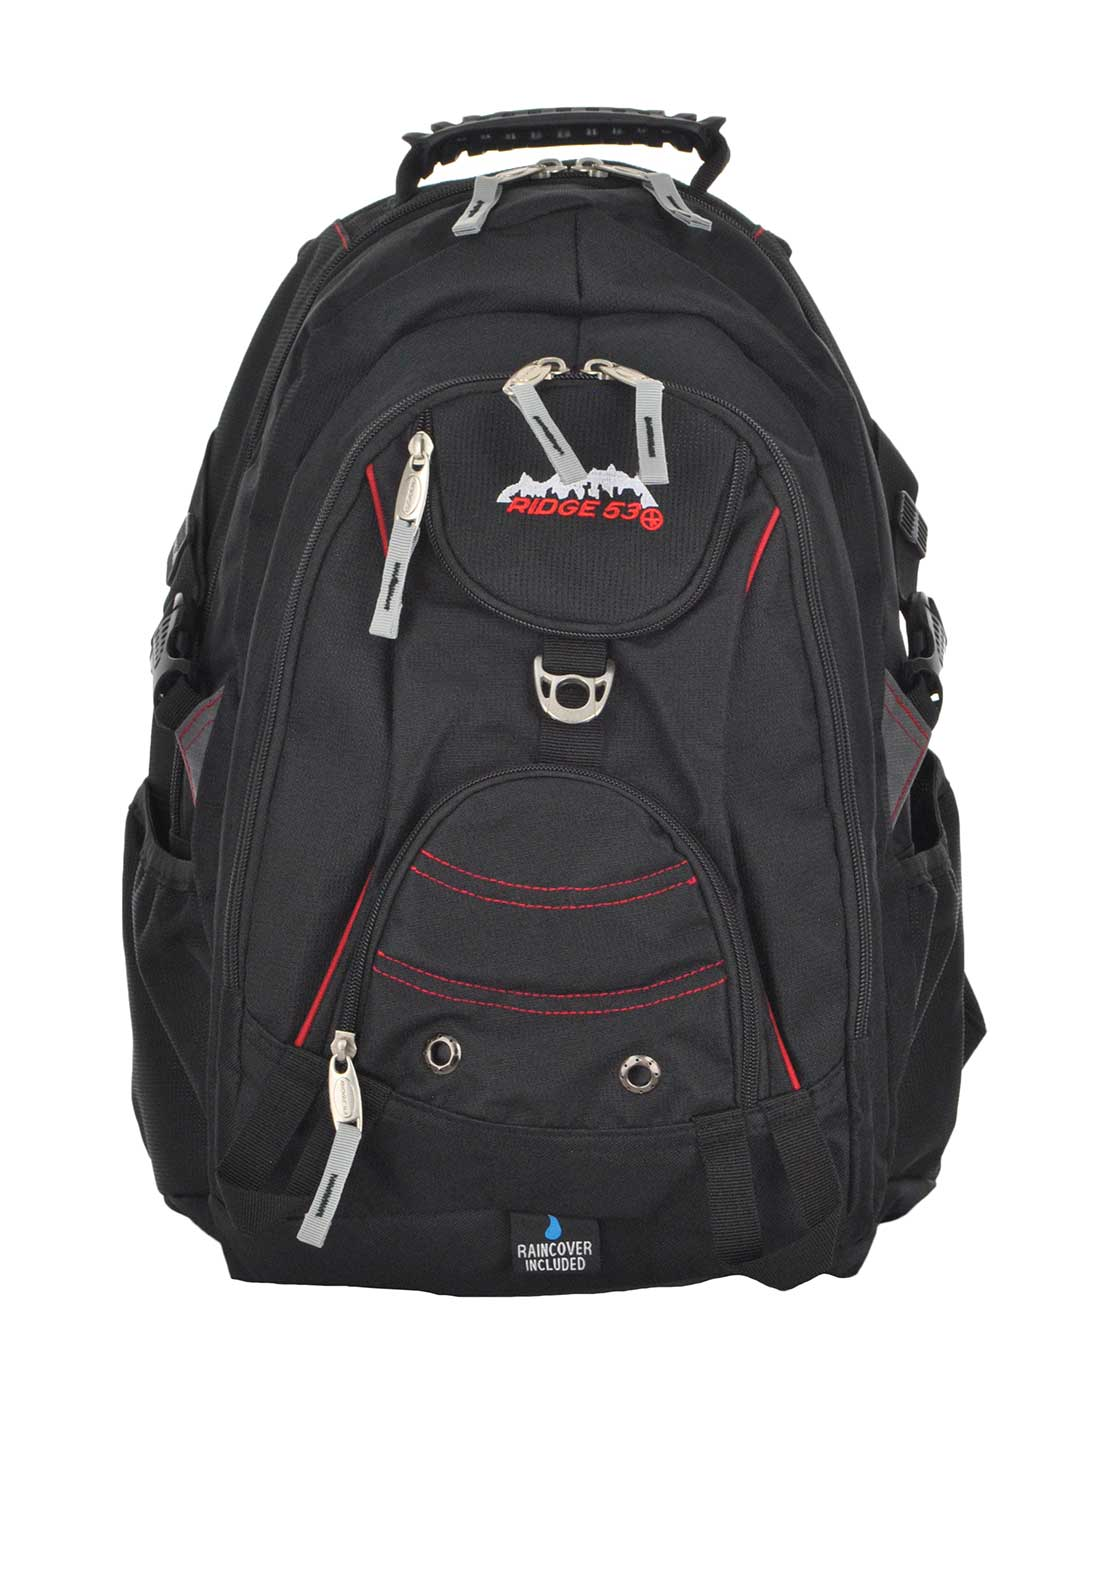 Ridge 53 Bolton Back Pack School Bag, Black